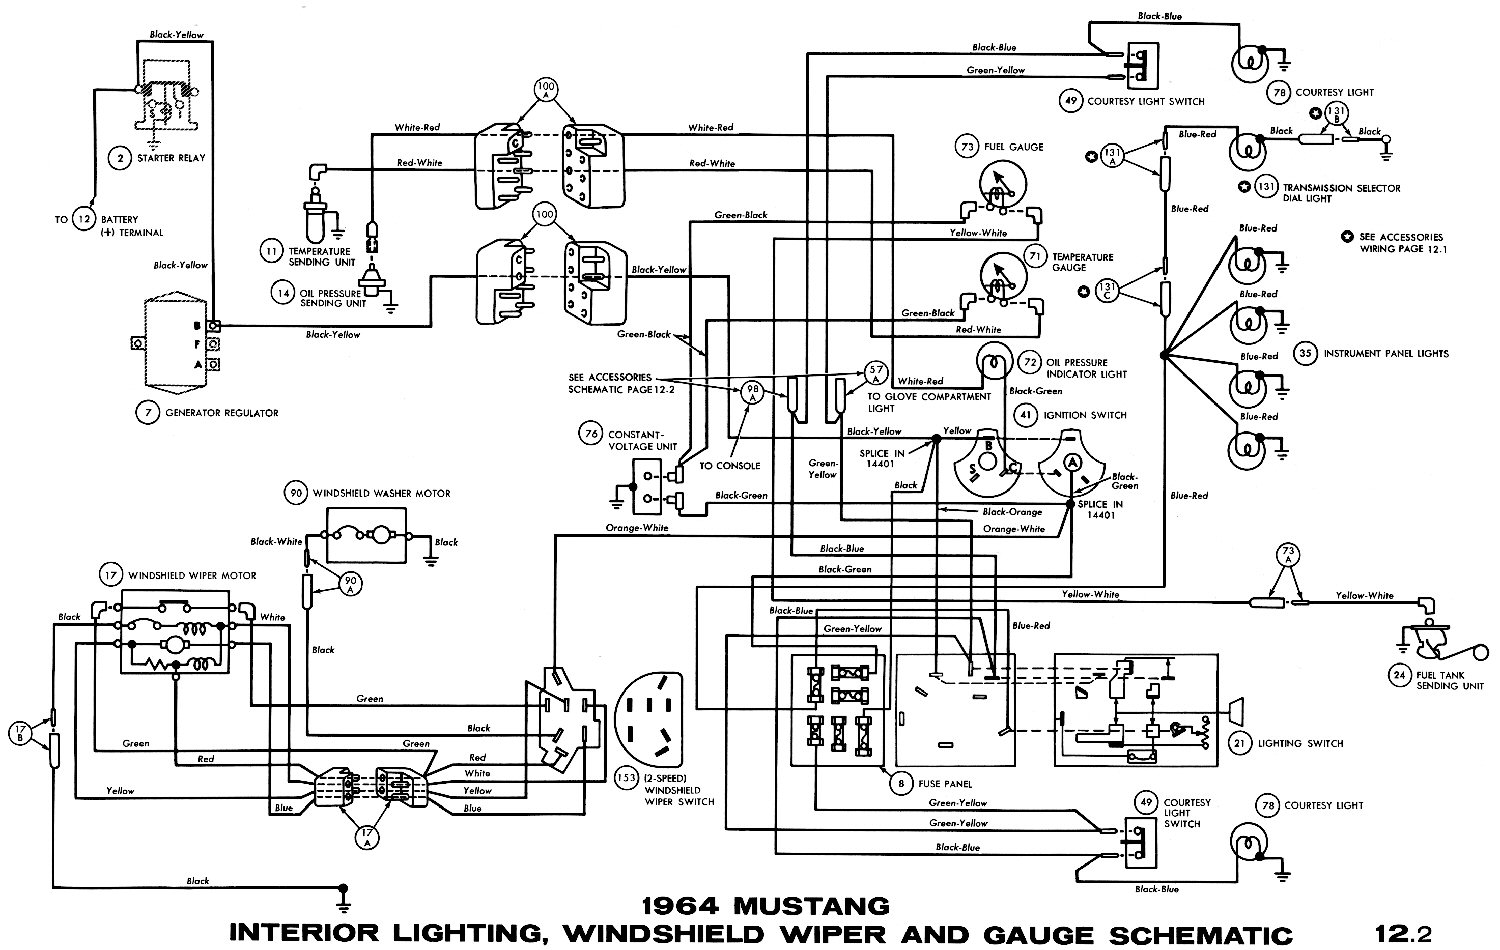 1964k wiring diagram for 1970 ford mustang readingrat net 1966 mustang wiring diagrams electrical schematics at nearapp.co